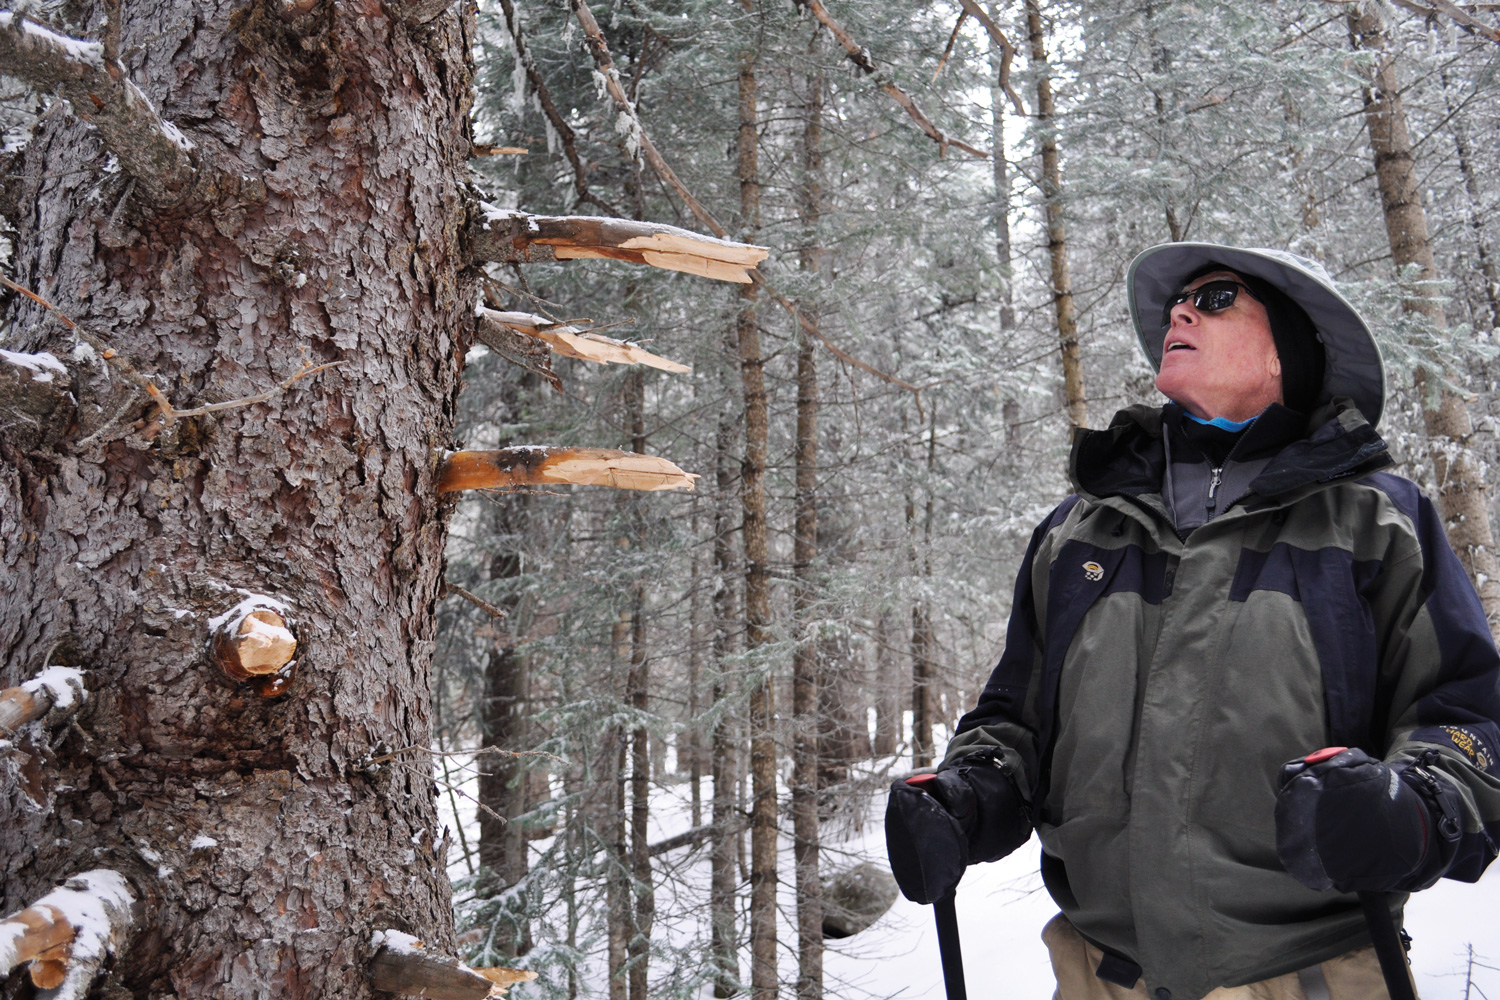 Who's cutting illegal ski trails in the Santa Fe National Forest